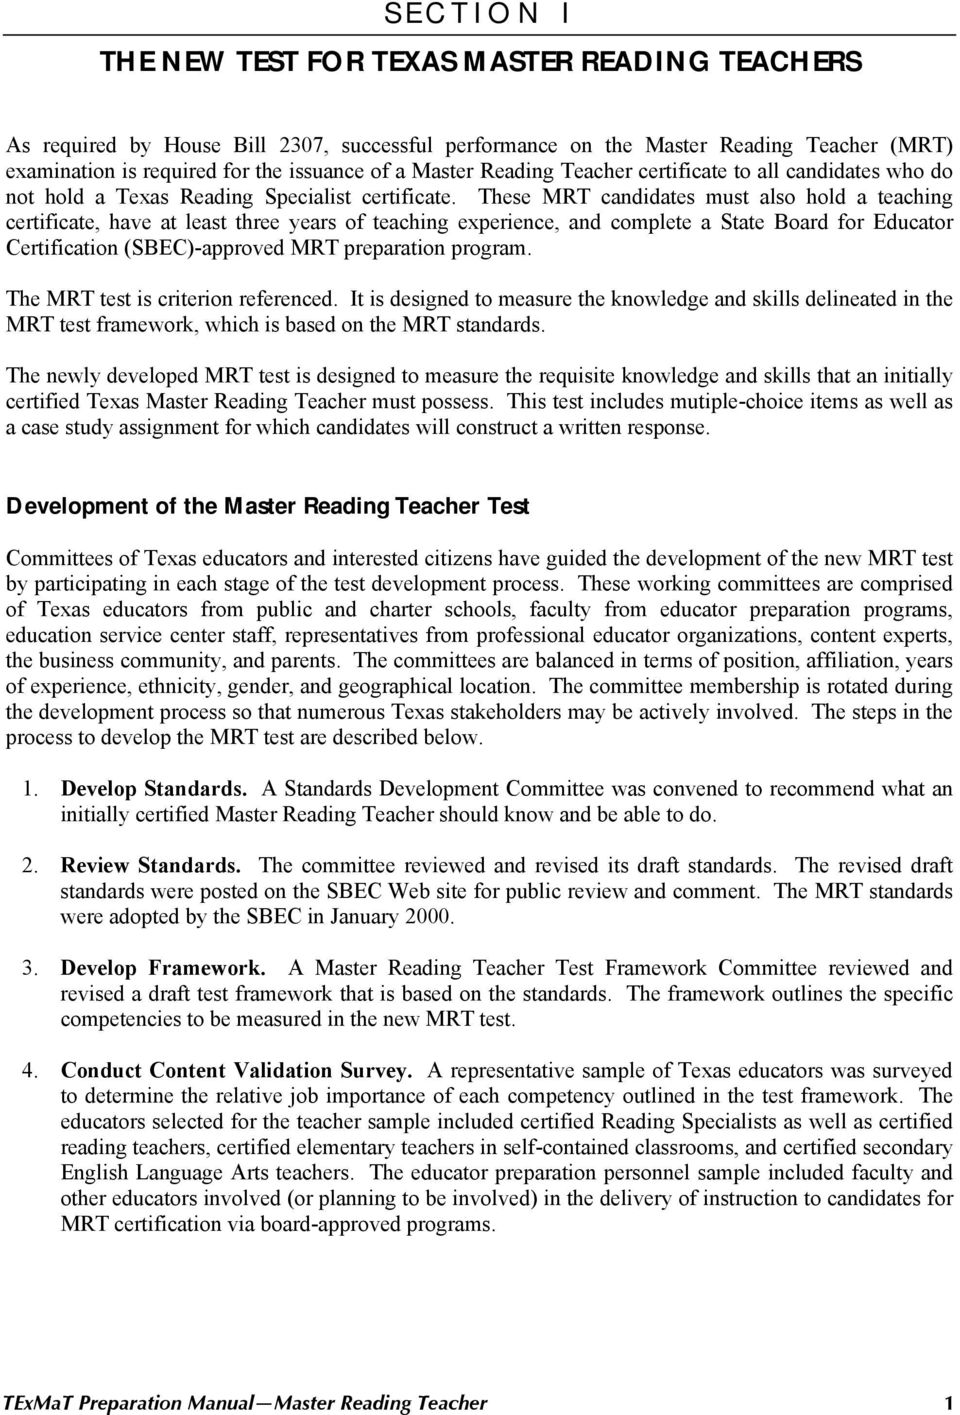 These MRT candidates must also hold a teaching certificate, have at least three years of teaching experience, and complete a State Board for Educator Certification (SBEC)-approved MRT preparation